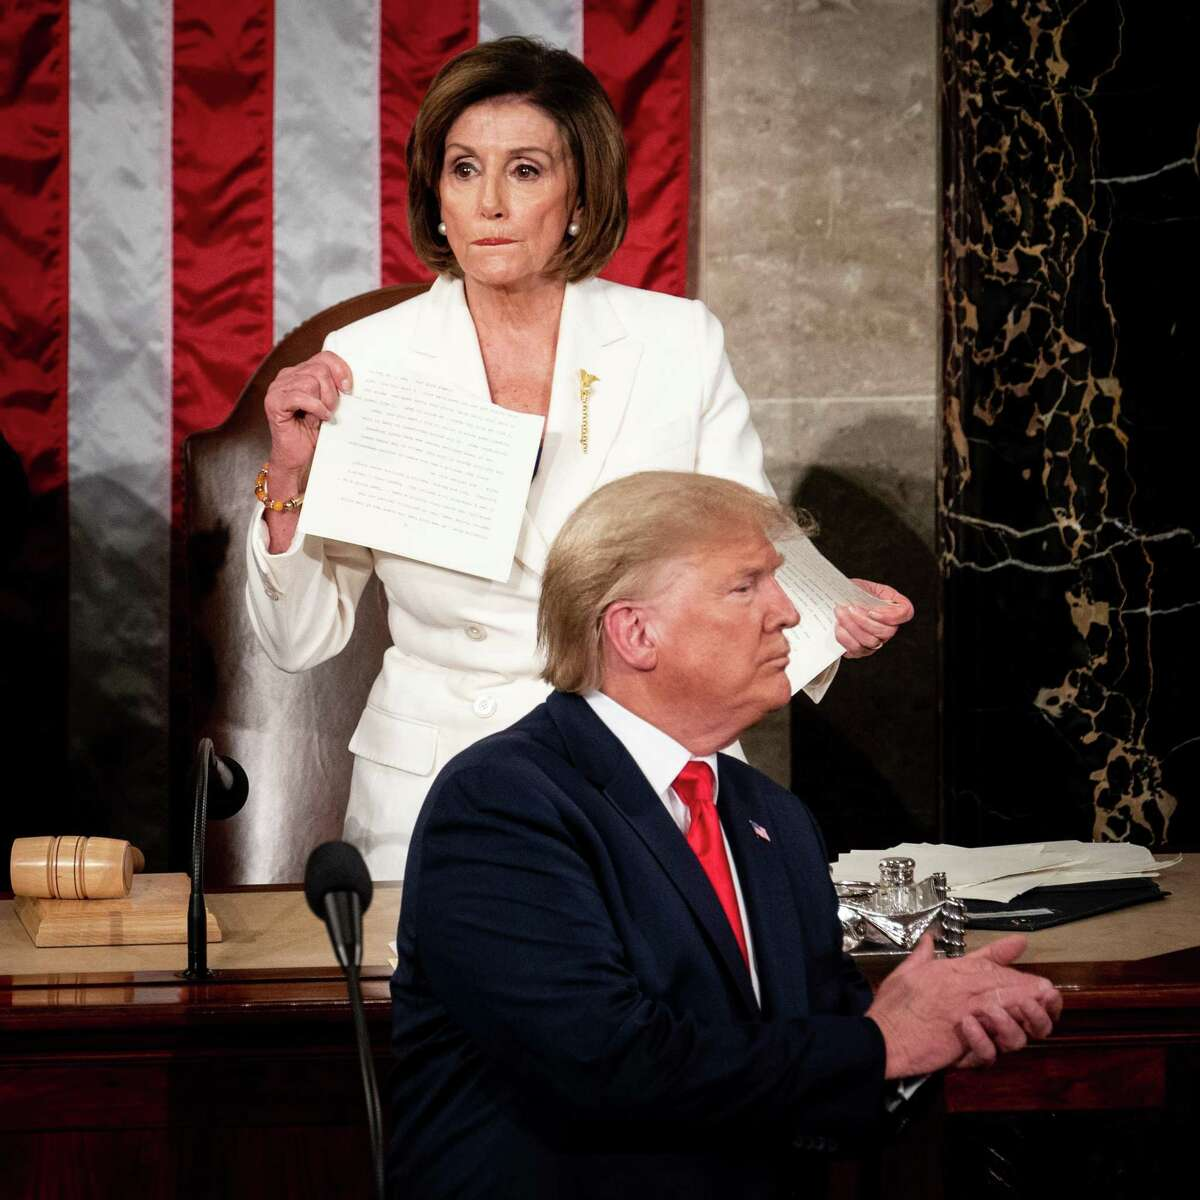 House Speaker Nancy Pelosi (D-Calif.) rips a copy of President Donald Trump's speech at the conclusion of his State of the Union address on Capitol Hill on Tuesday, Feb. 4, 2020.